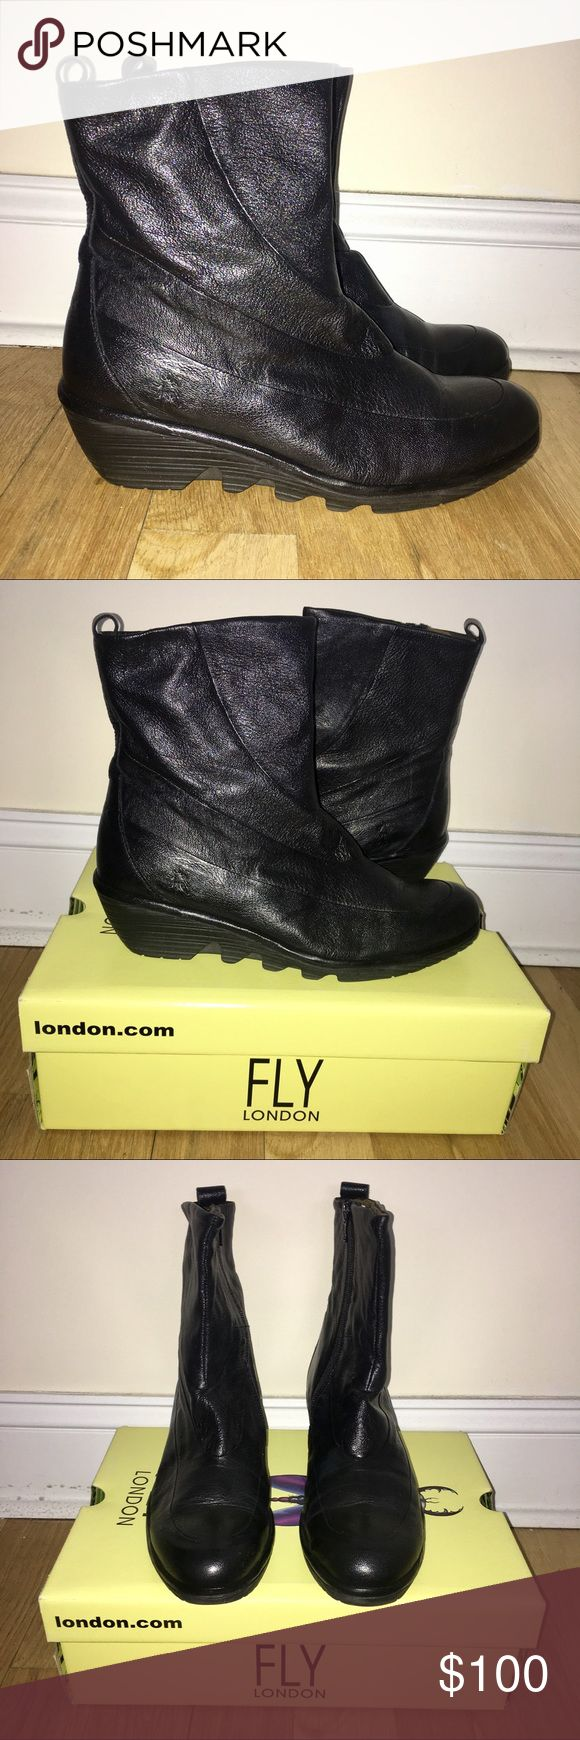 """Fly London Boots Fly London """"Pilz"""" boots. Mid-calf height. Round toe. Slim wedge heel. Full grain genuine leather upper. Lined with soft canvas. Man-made sole with textures thread. Excellent condition. Size EU 41. Fly London Shoes"""